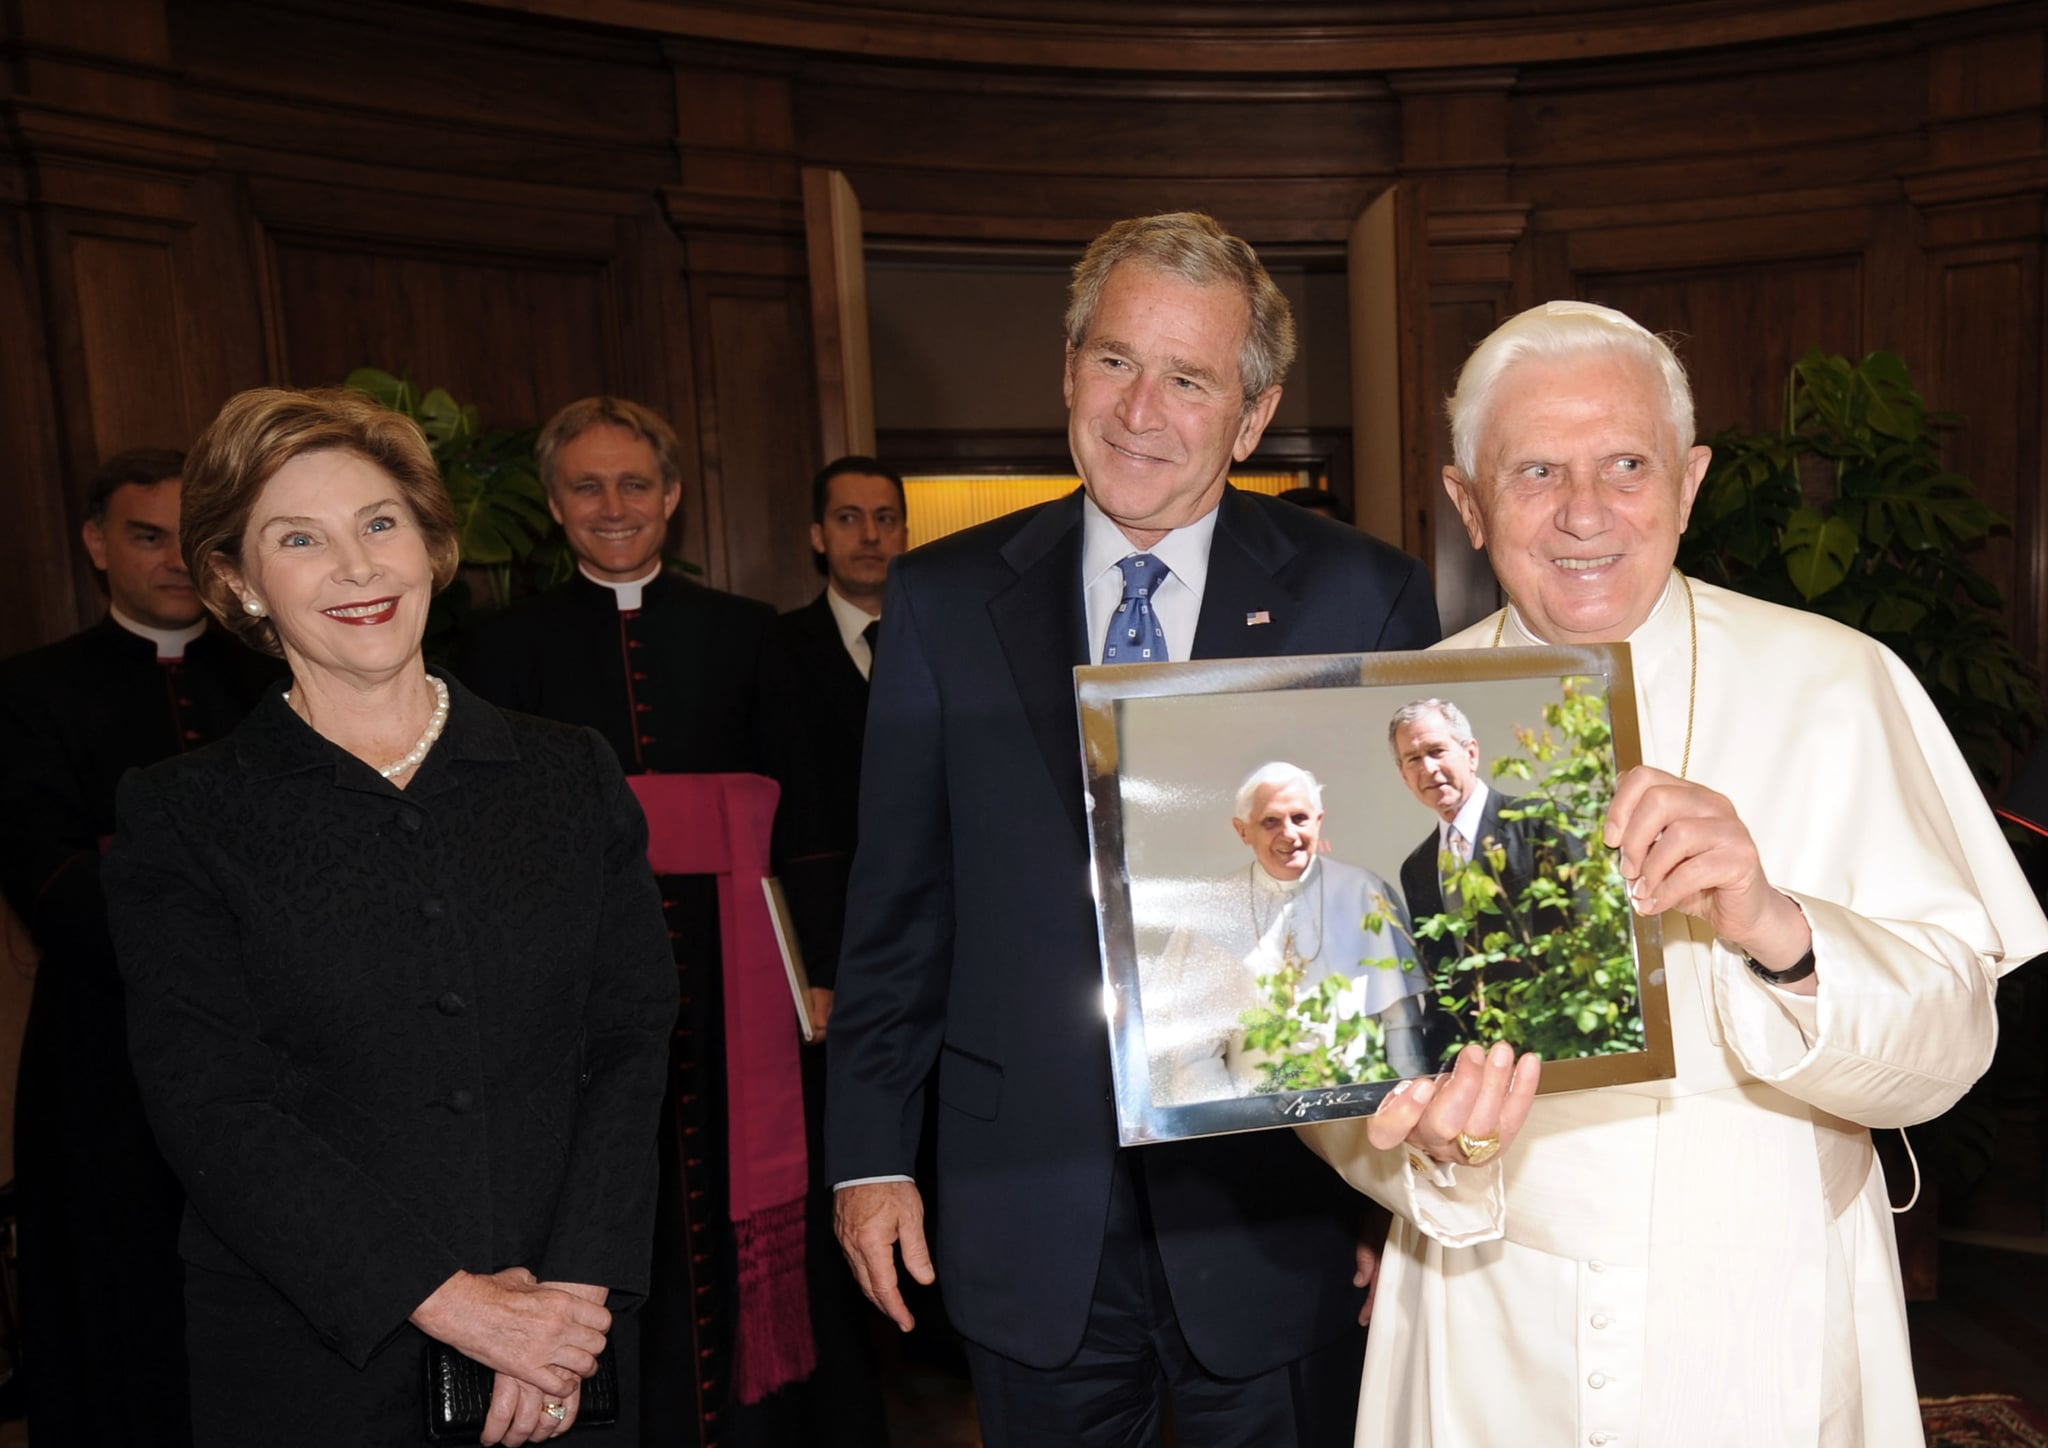 Pope Benedict XVI holds a picture while meeting with Bush and first lady Laura Bush June 13, 2008.